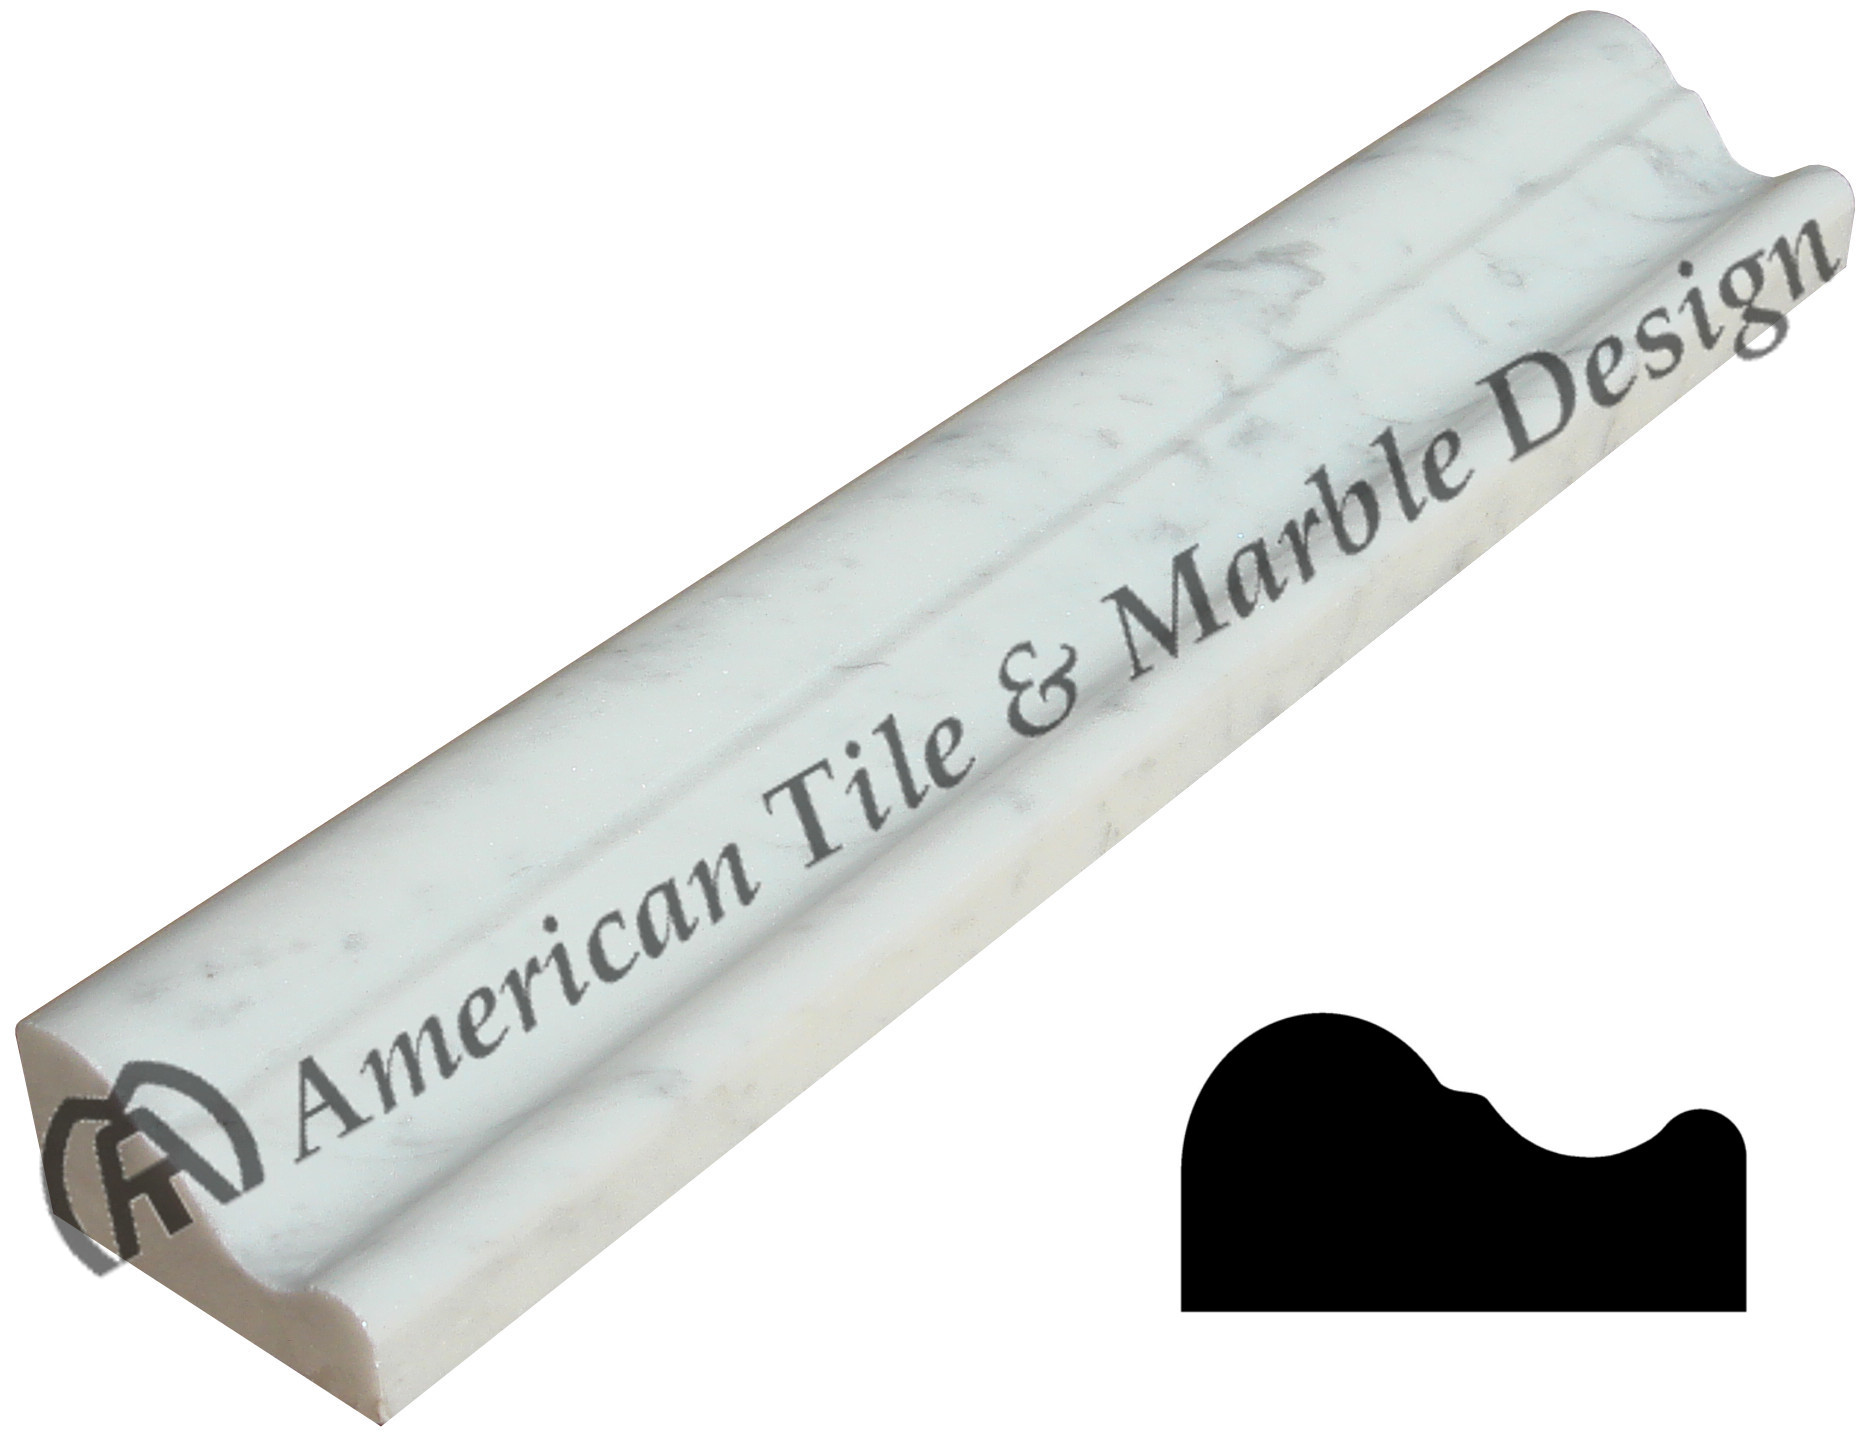 Mo 302 American Tile And Marble Design